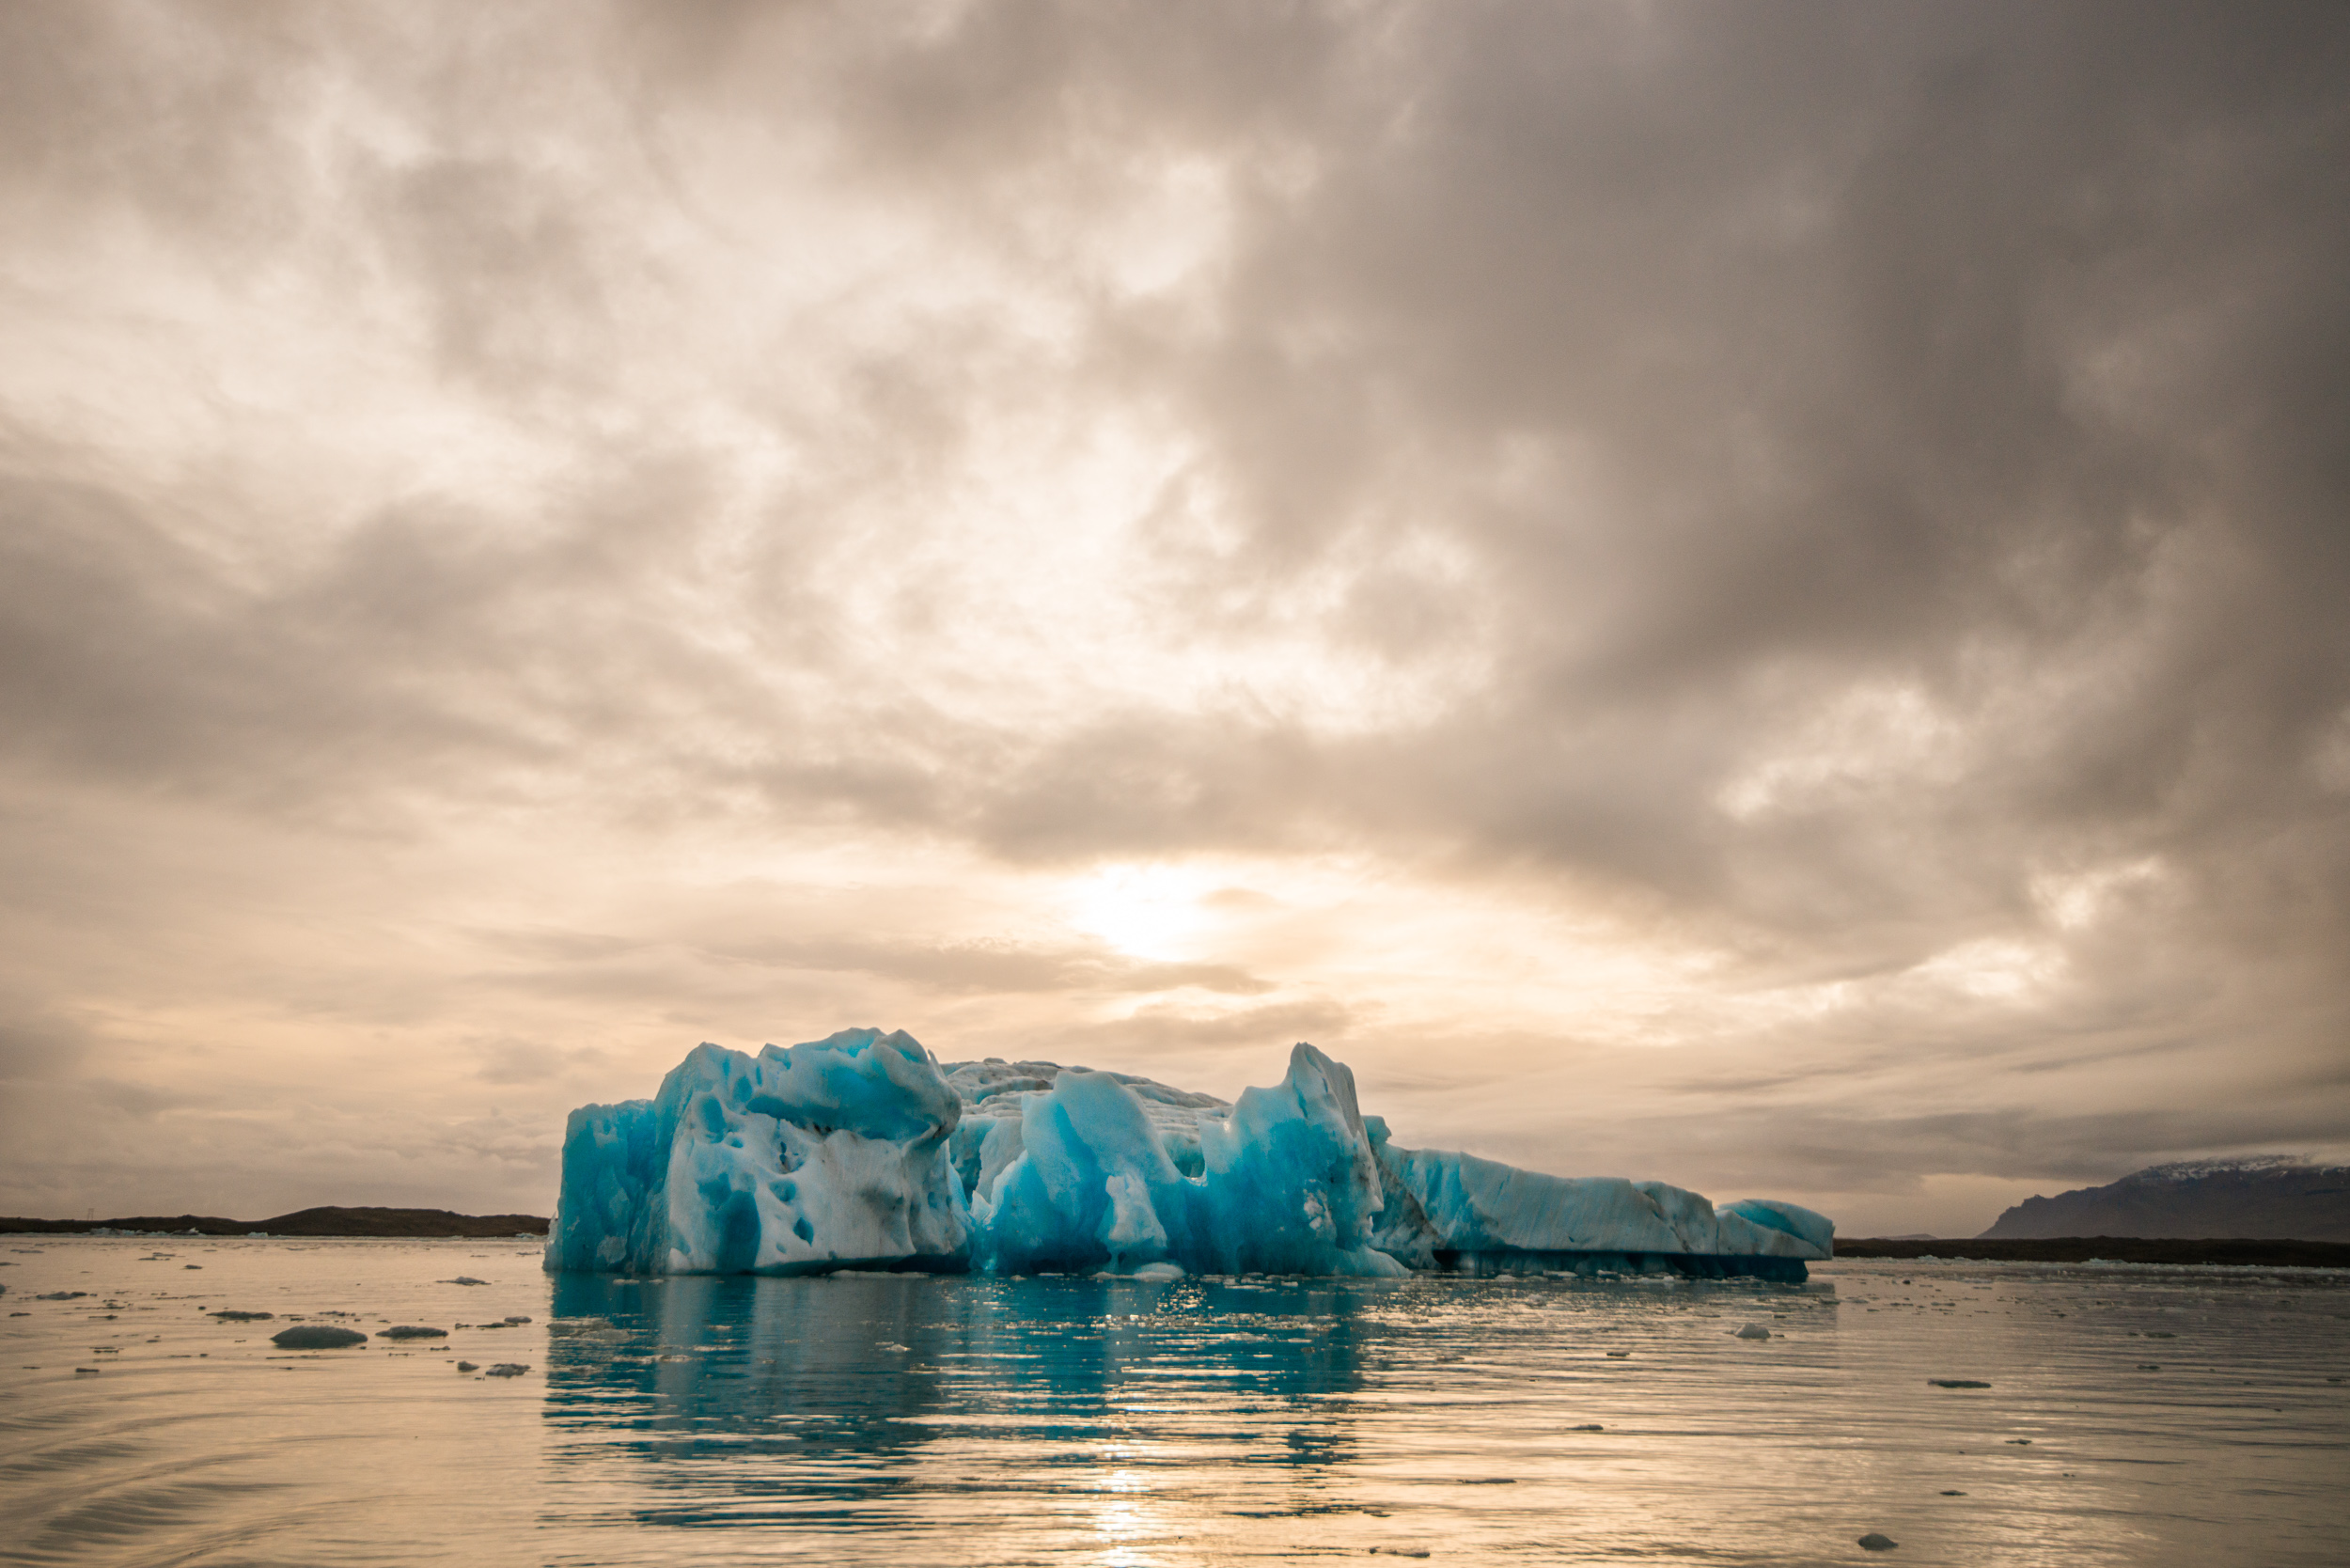 """For 'Die Another Day', the film crew dammed the sea off from the huge lake that these icebergs fall from a glacier into, removing the salt content. The entire lake froze within two weeks, and the incredible car chase scenes were shot on the frozen lake punctuated by these icebergs.  """"Only God and Hollywood can make miracles..."""""""